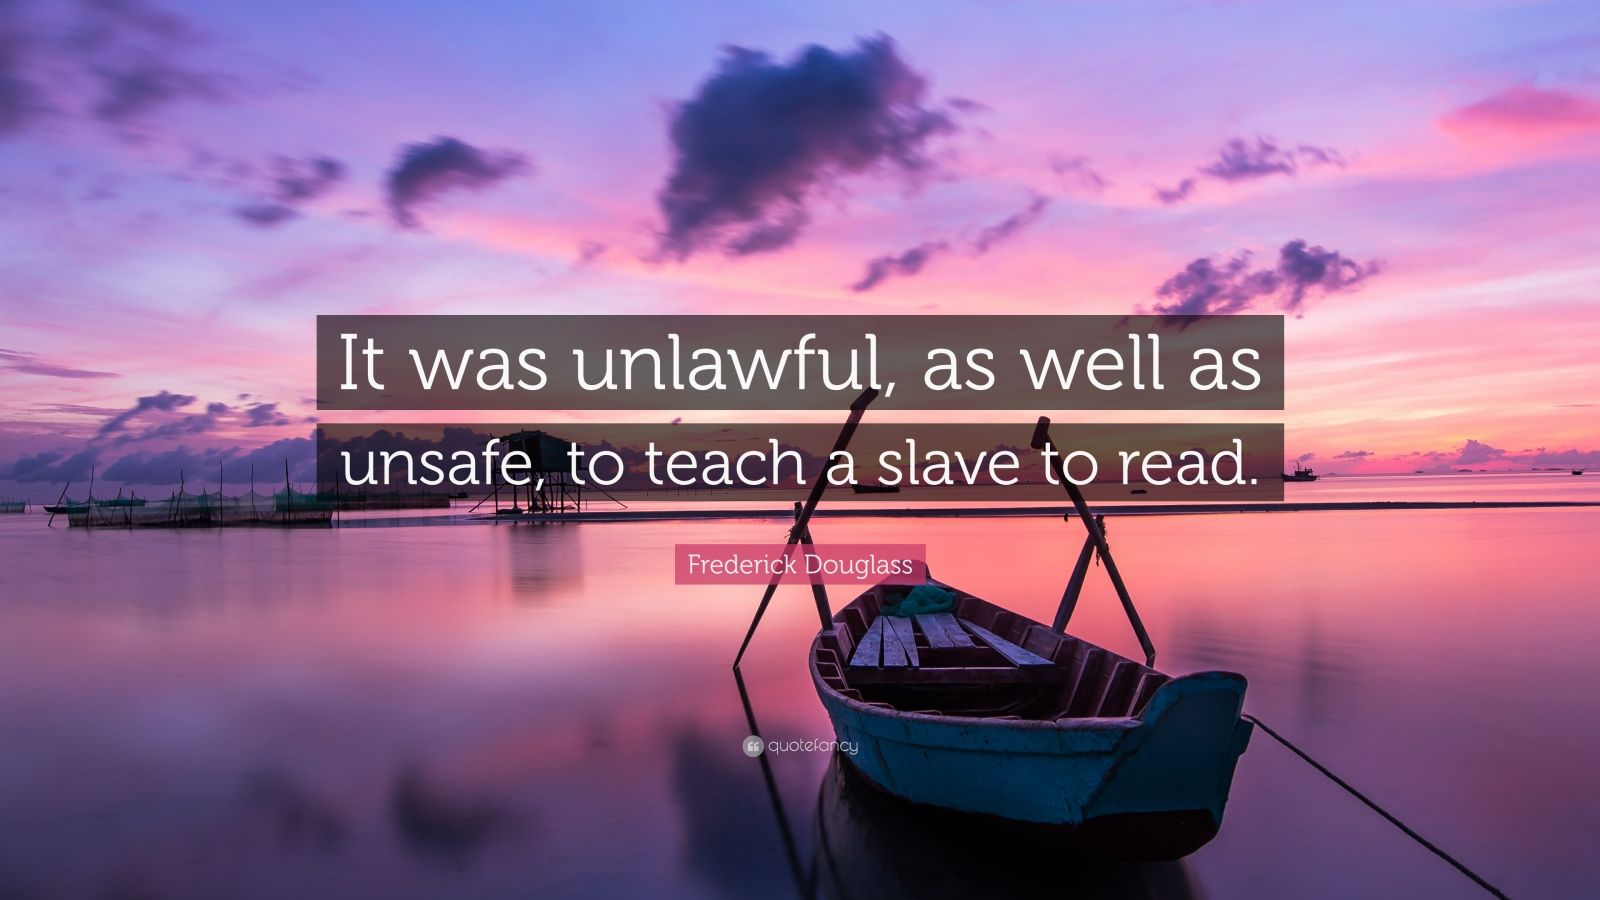 """Frederick Douglass Quote: """"It was unlawful, as well as unsafe, to teach a slave to read."""""""